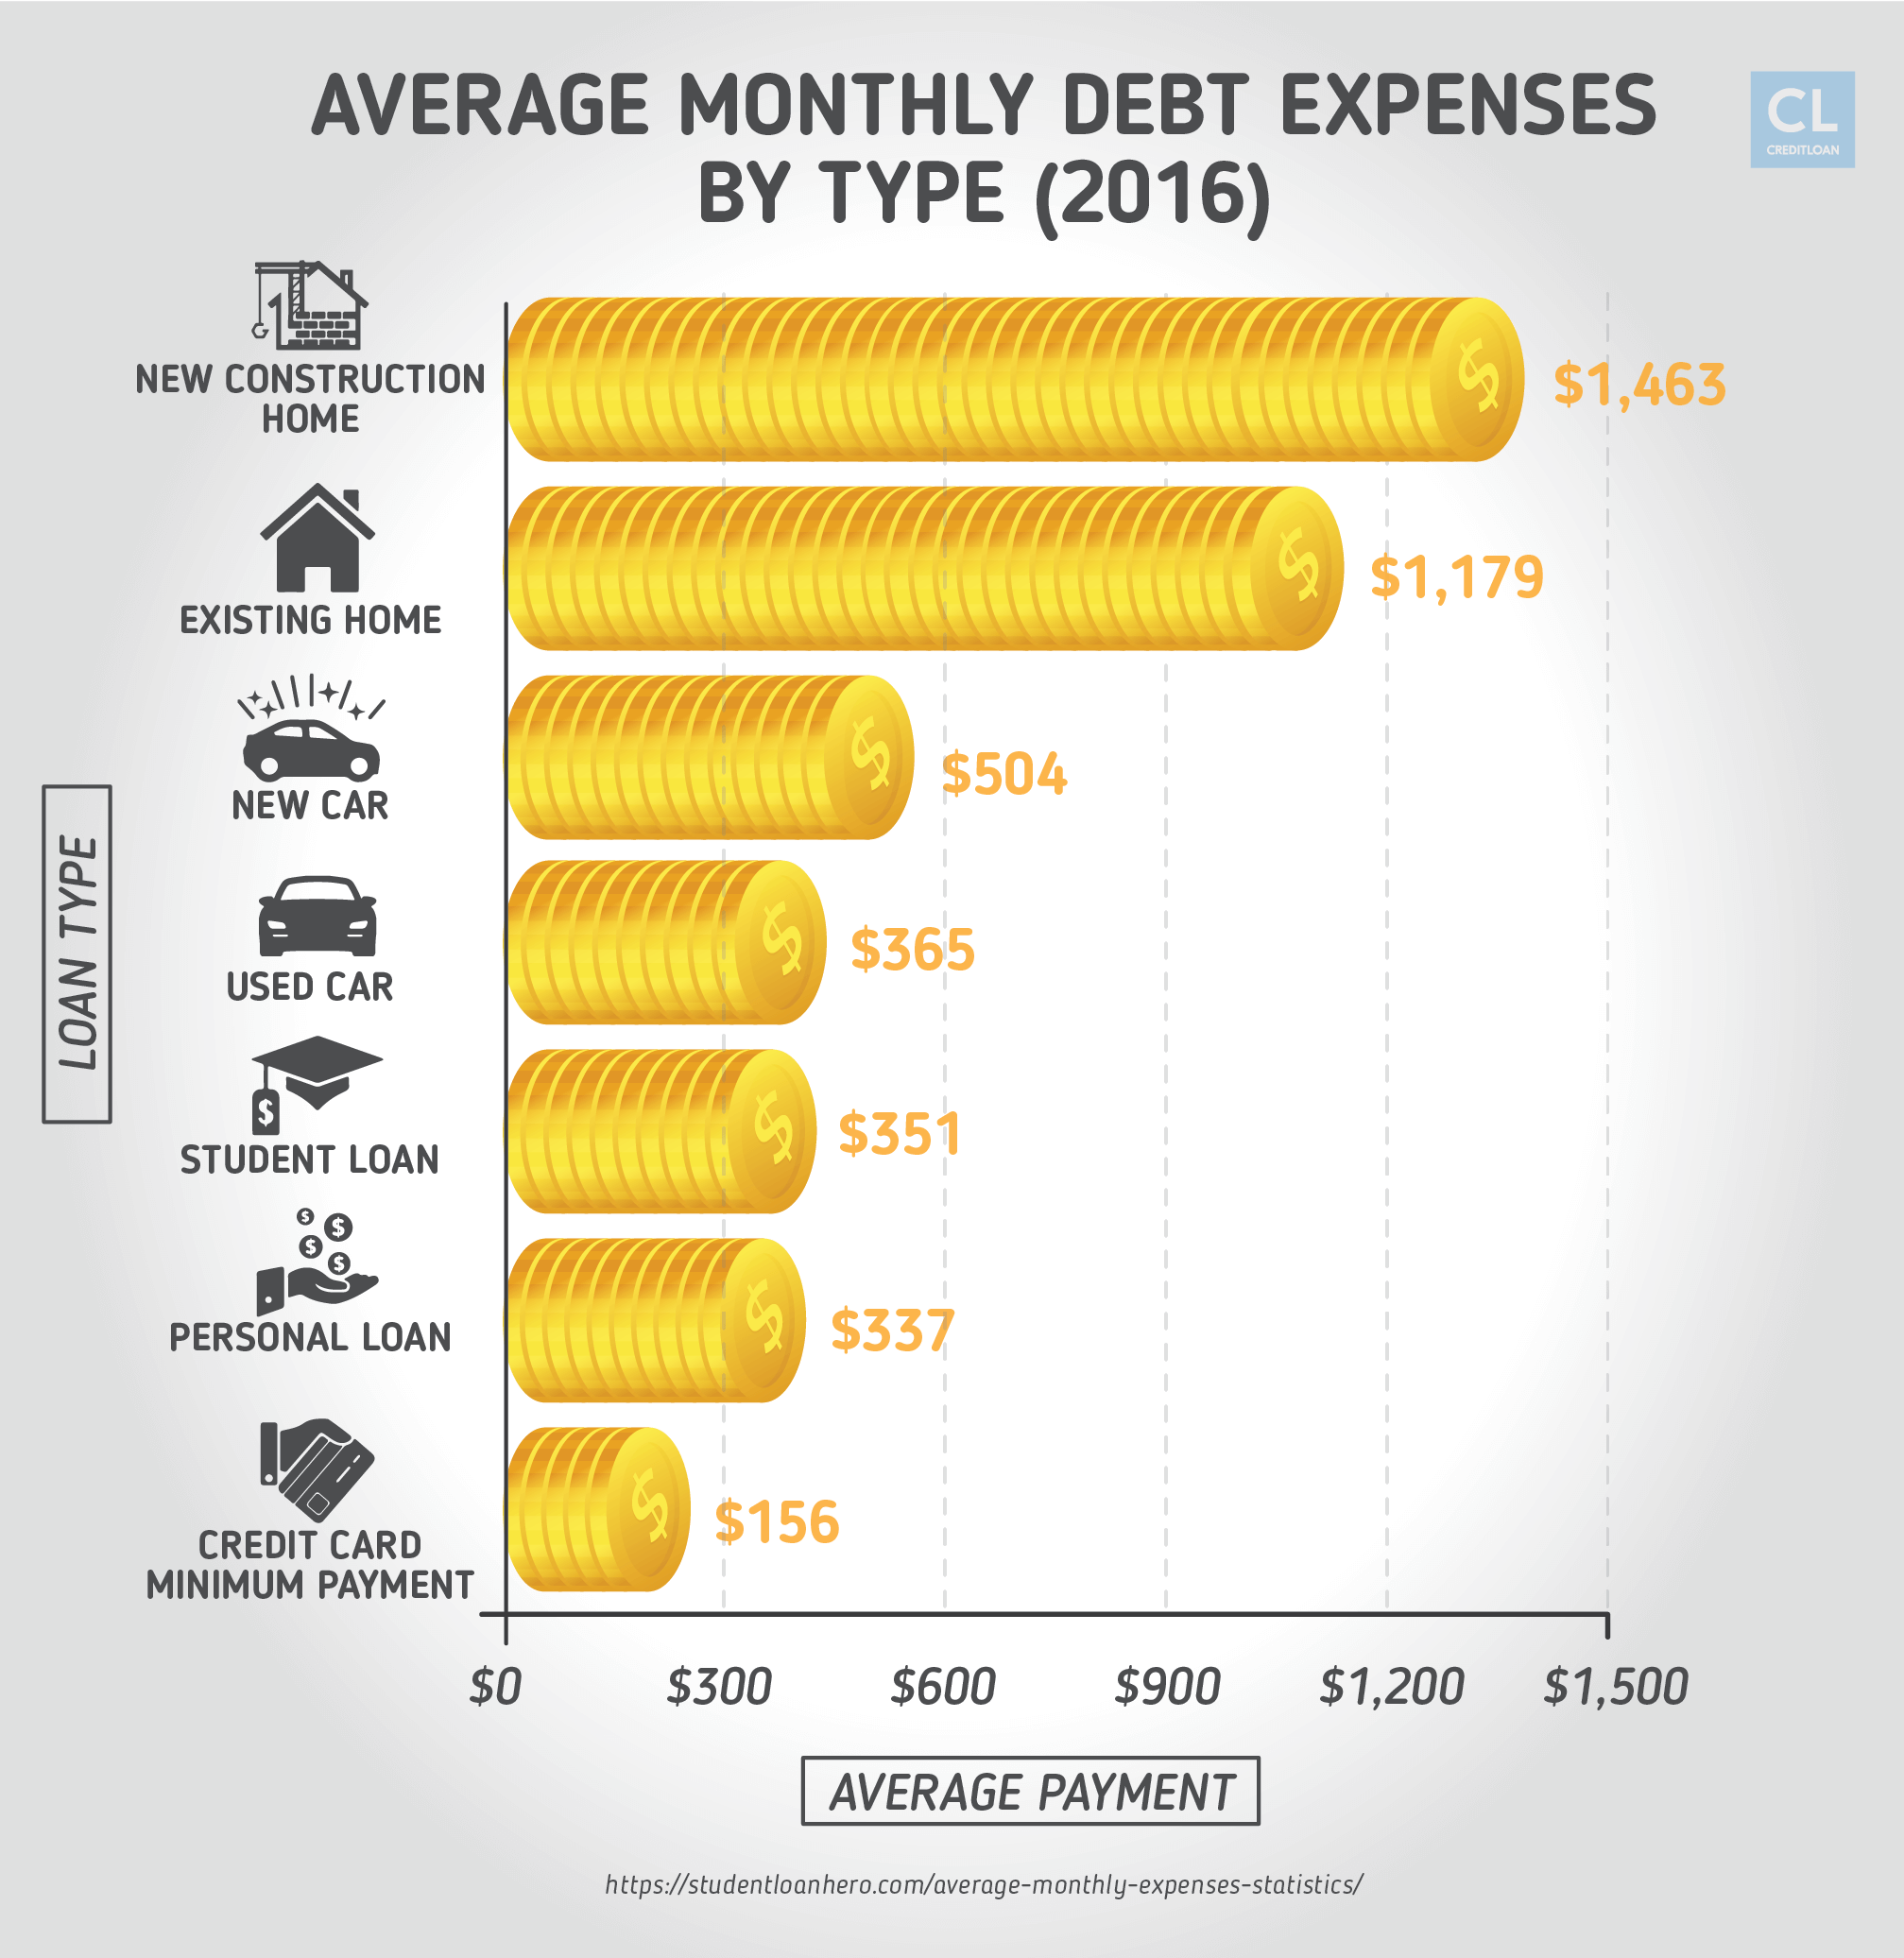 2016 Monthly Debt Expenses